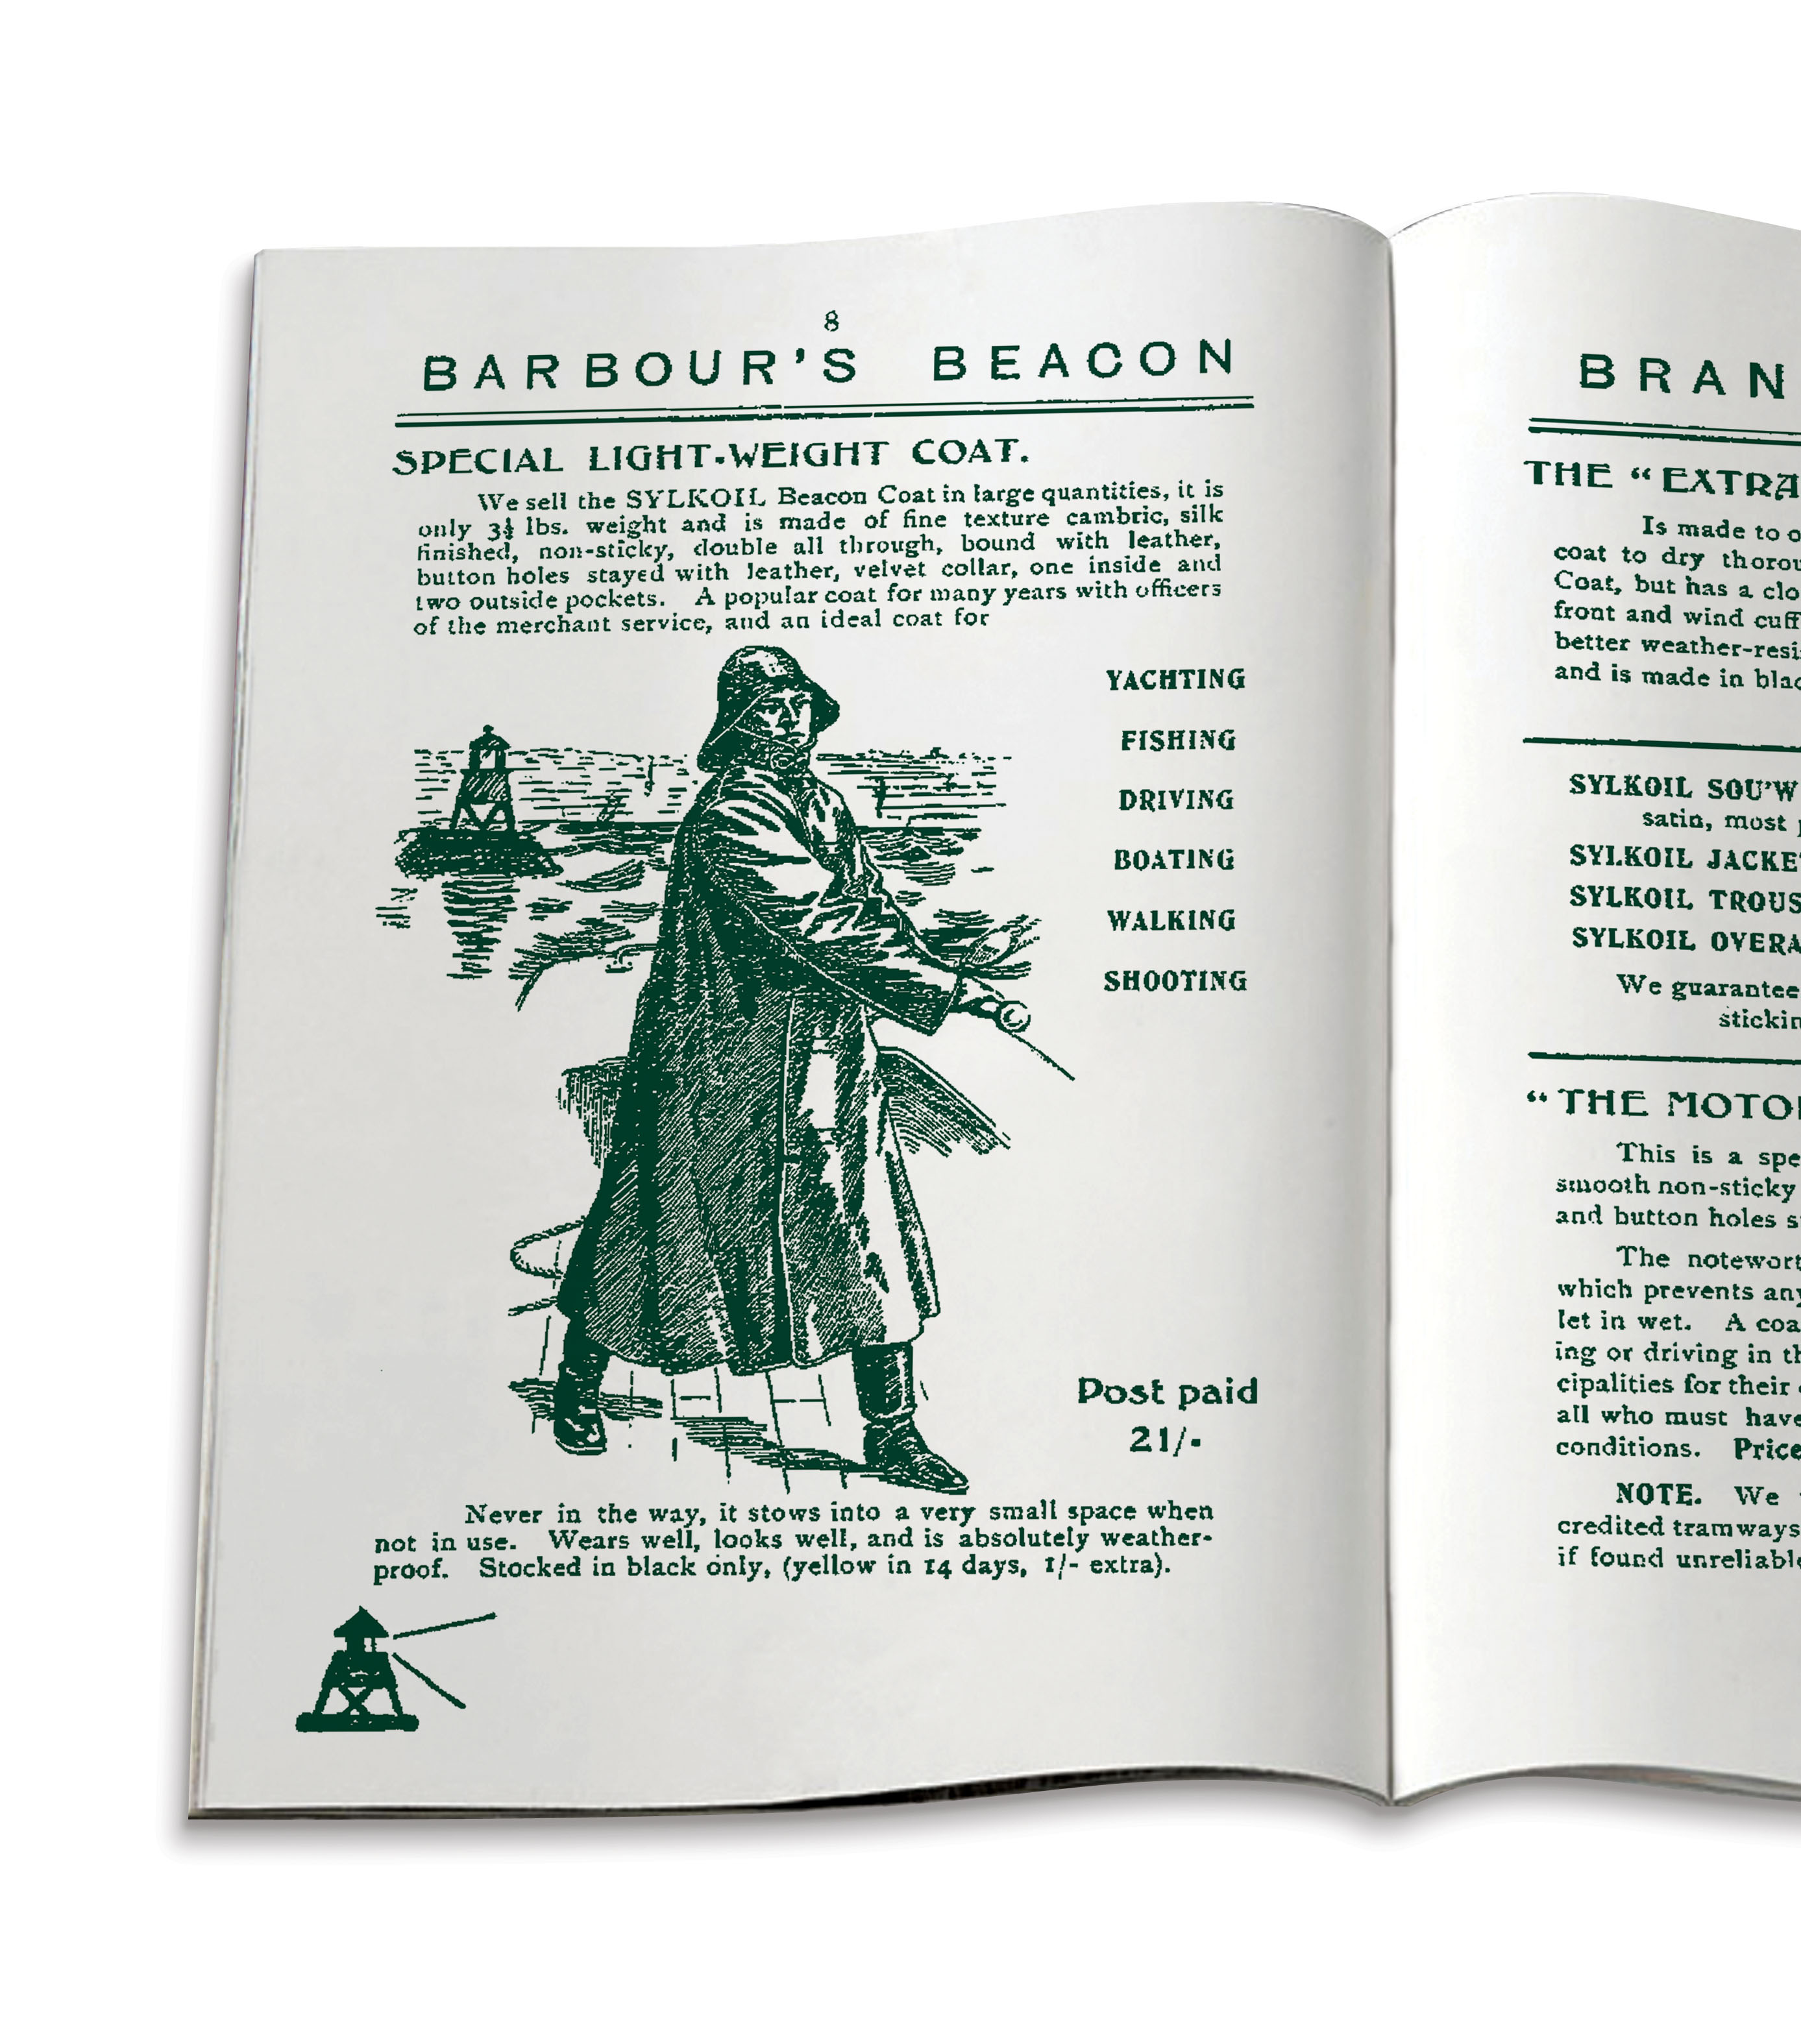 1908 - first mail order catalogue